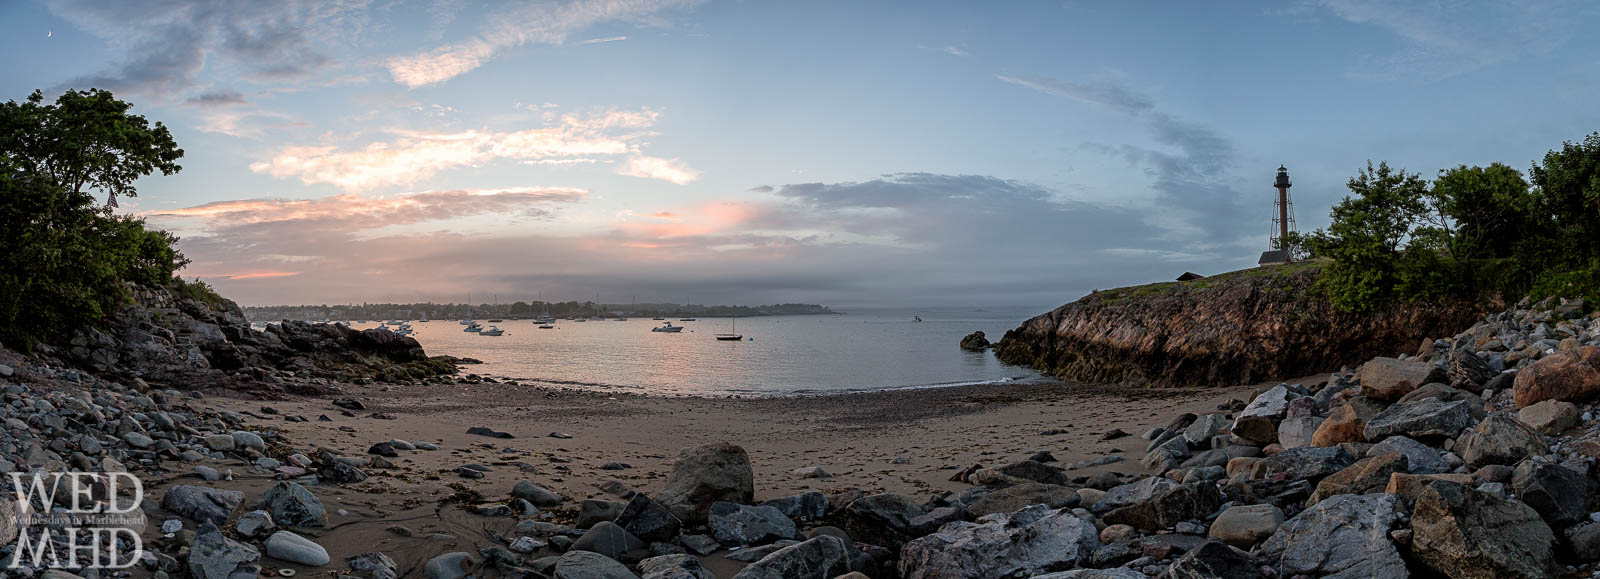 The secret beach at Cove Lane is captured in this panorama encompassing Marblehead Light, the harbor and crescent moon